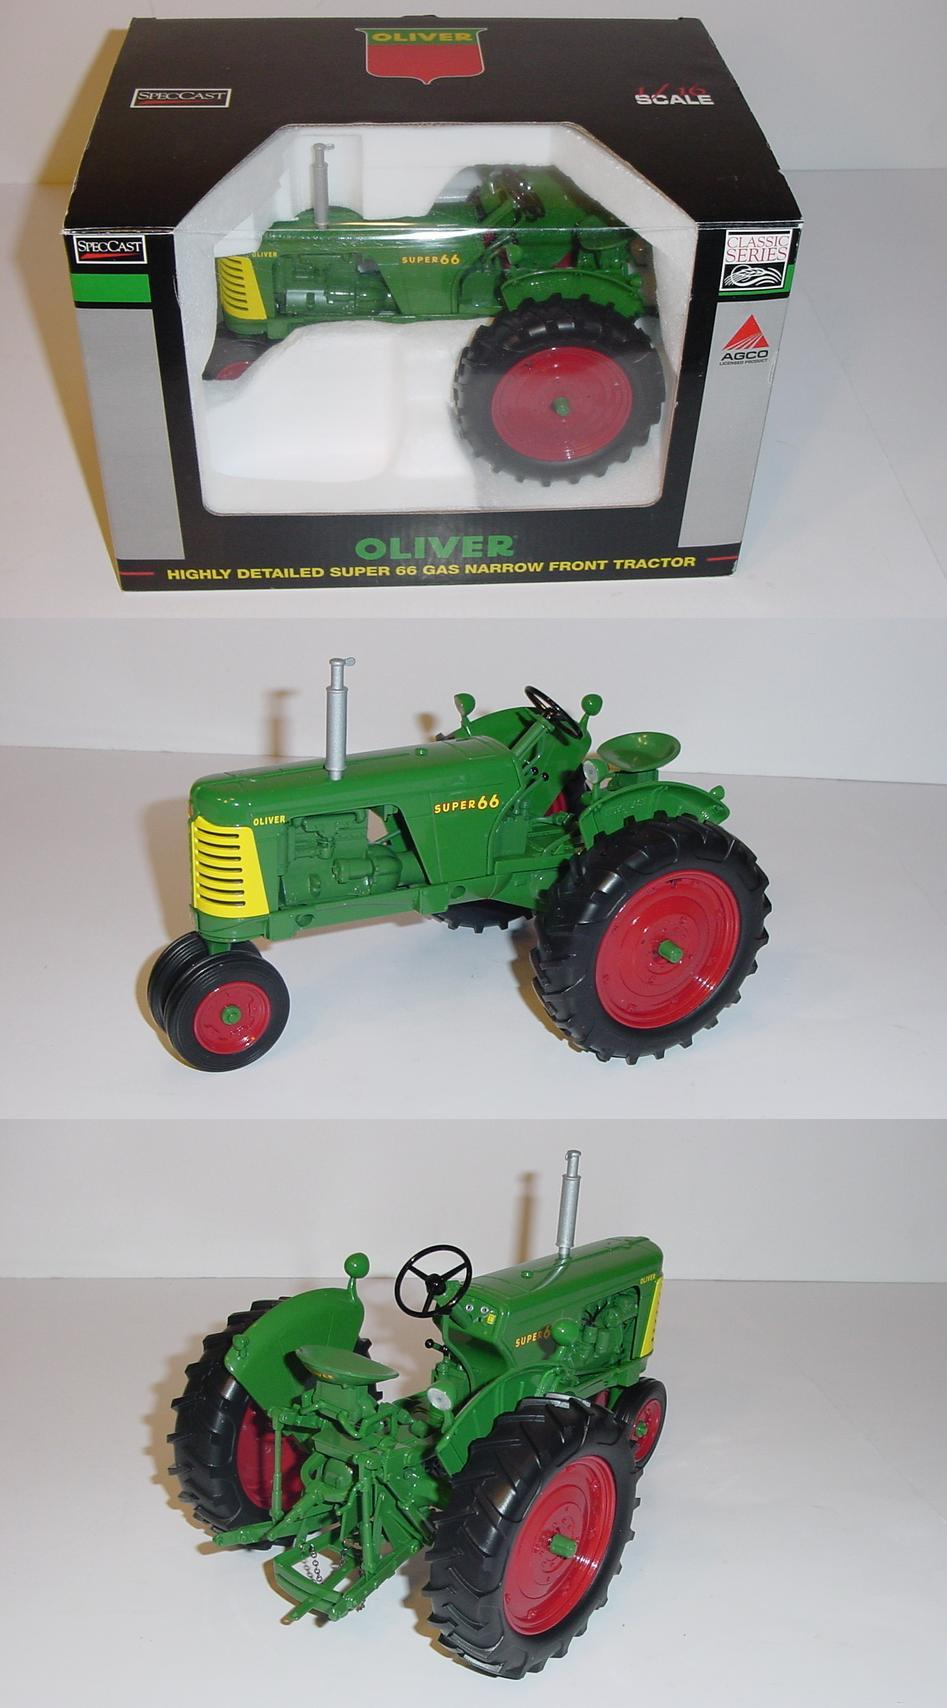 Oliver Combine Tractors Amp Equipment T Tractor Super 55 Schematic 66 Gas Nib